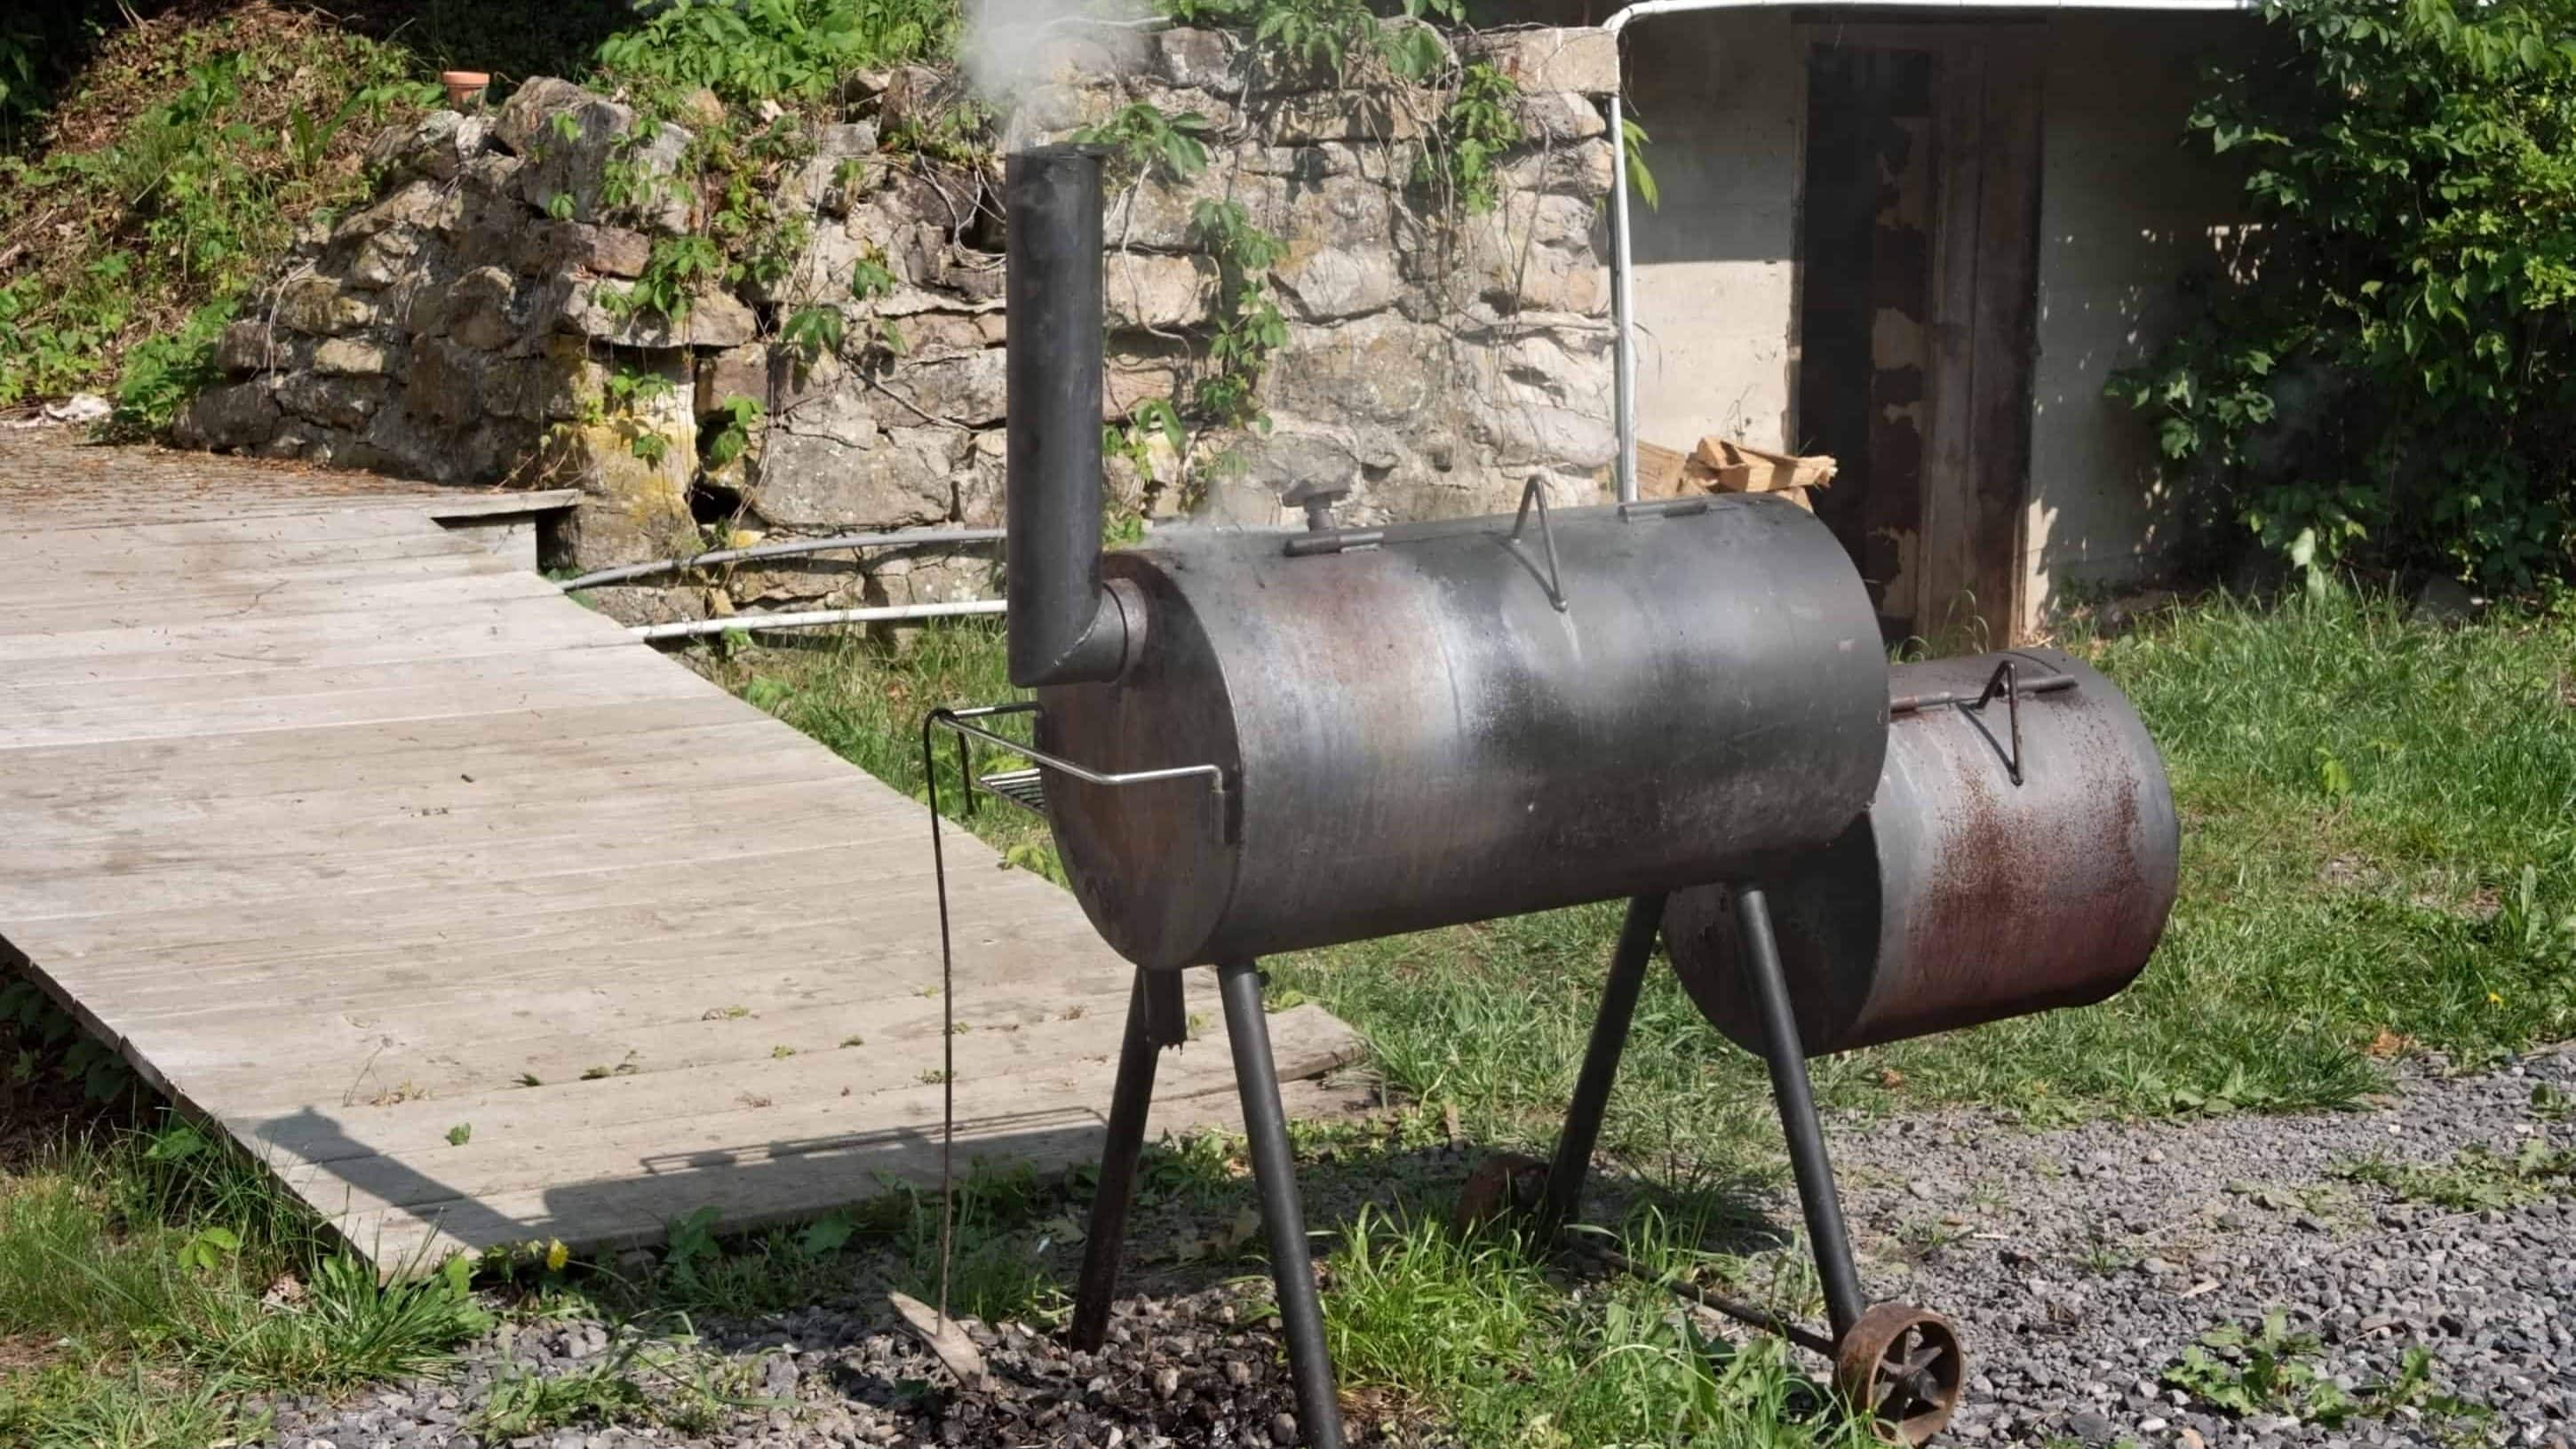 The Best Offset Smokers And How To Use Them